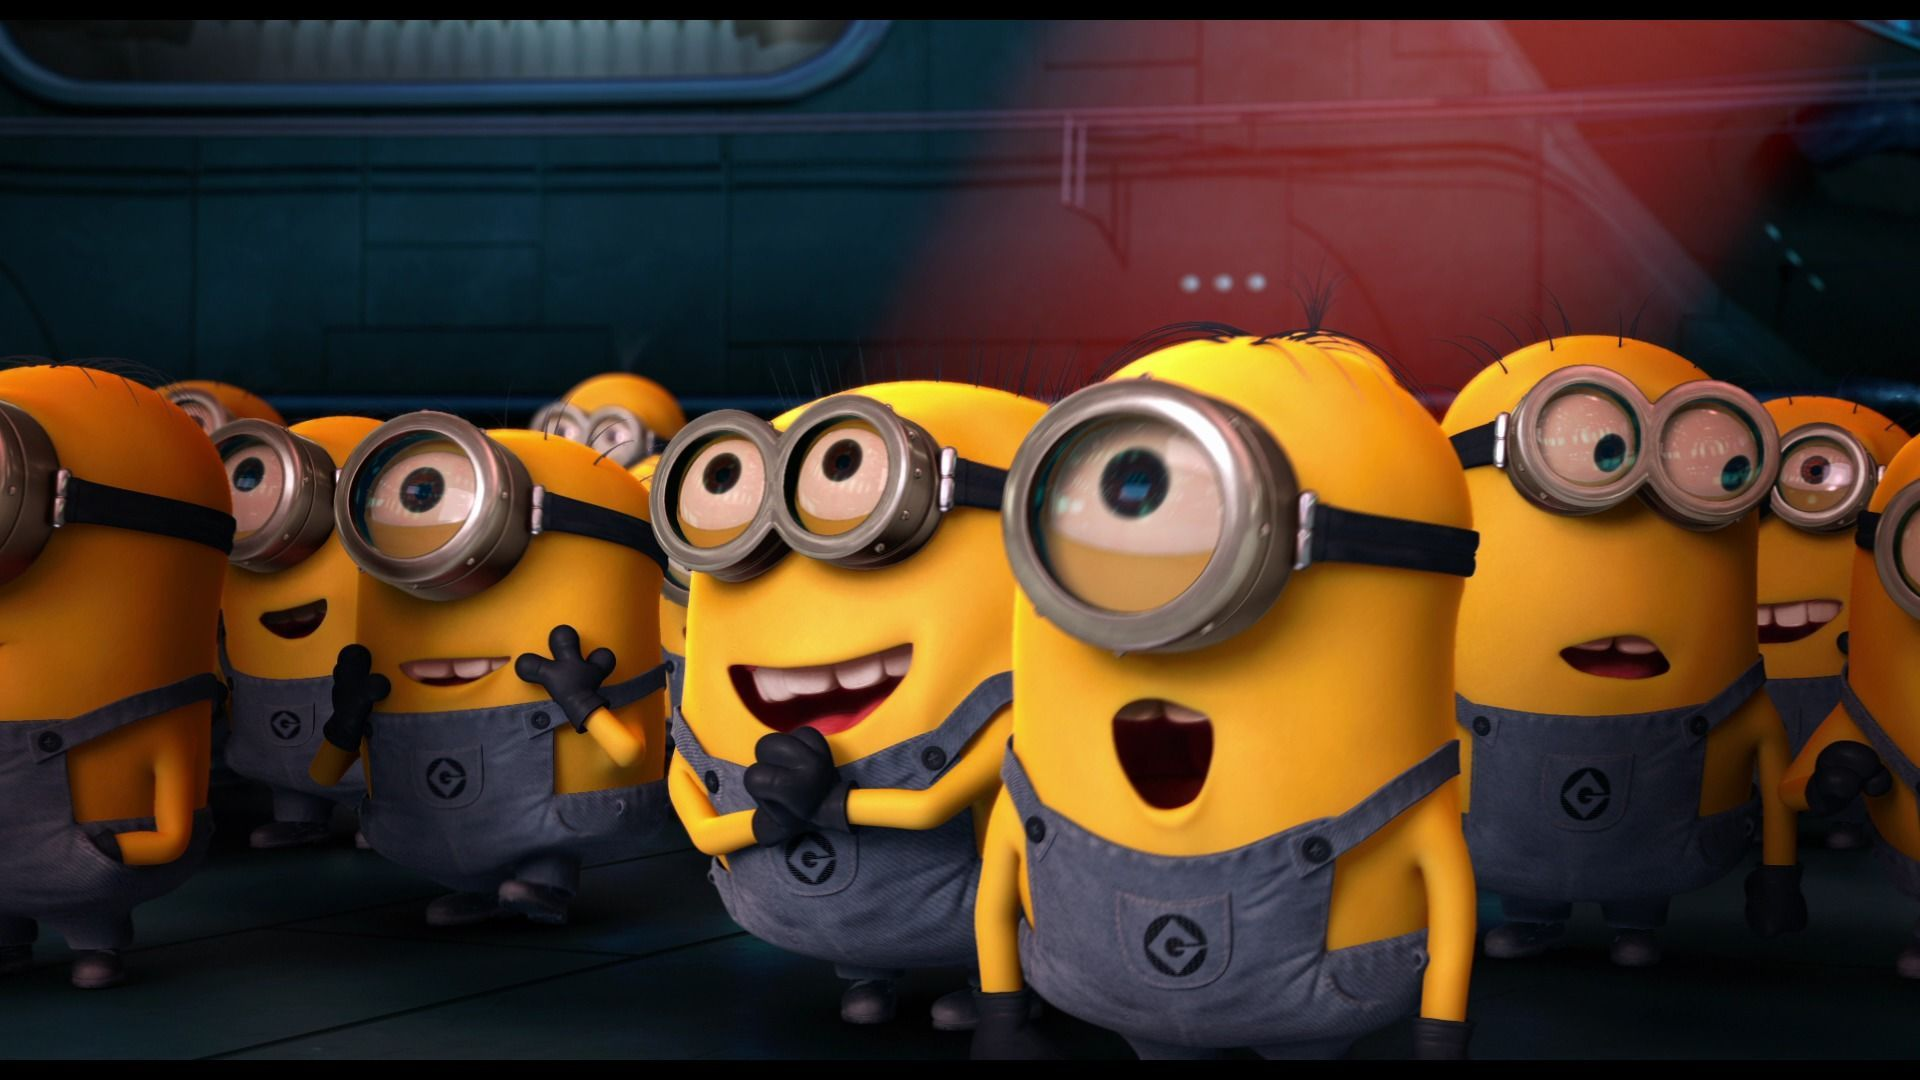 Despicable me 2 hd minions wallpapers for desktop 1920x1080 1920x1080